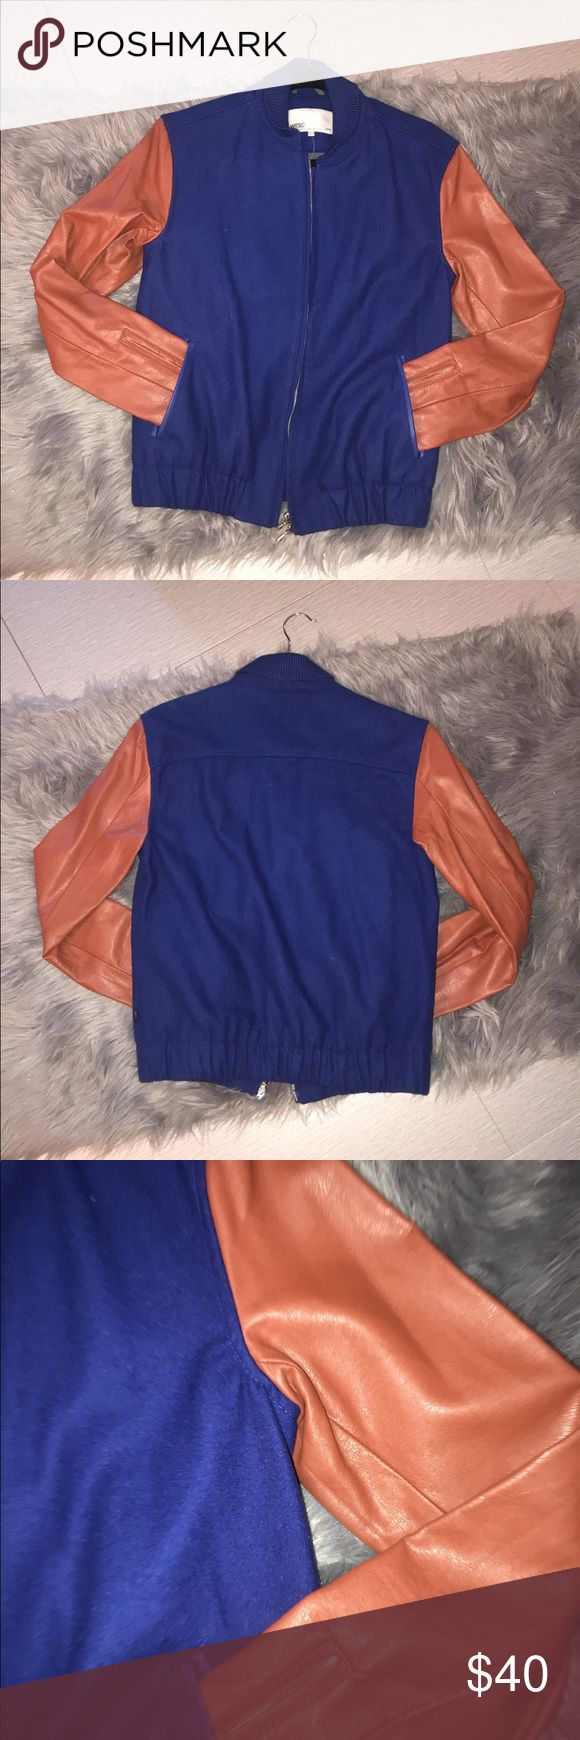 ‼️SALE ‼️ wool varsity style jacket (BN)(NWT) Cool   Wool and faux leather varsity jacket blue and brownish orange....leather sleeves brand new never worn really nice jacket Urban Outfitters Jackets & Coats